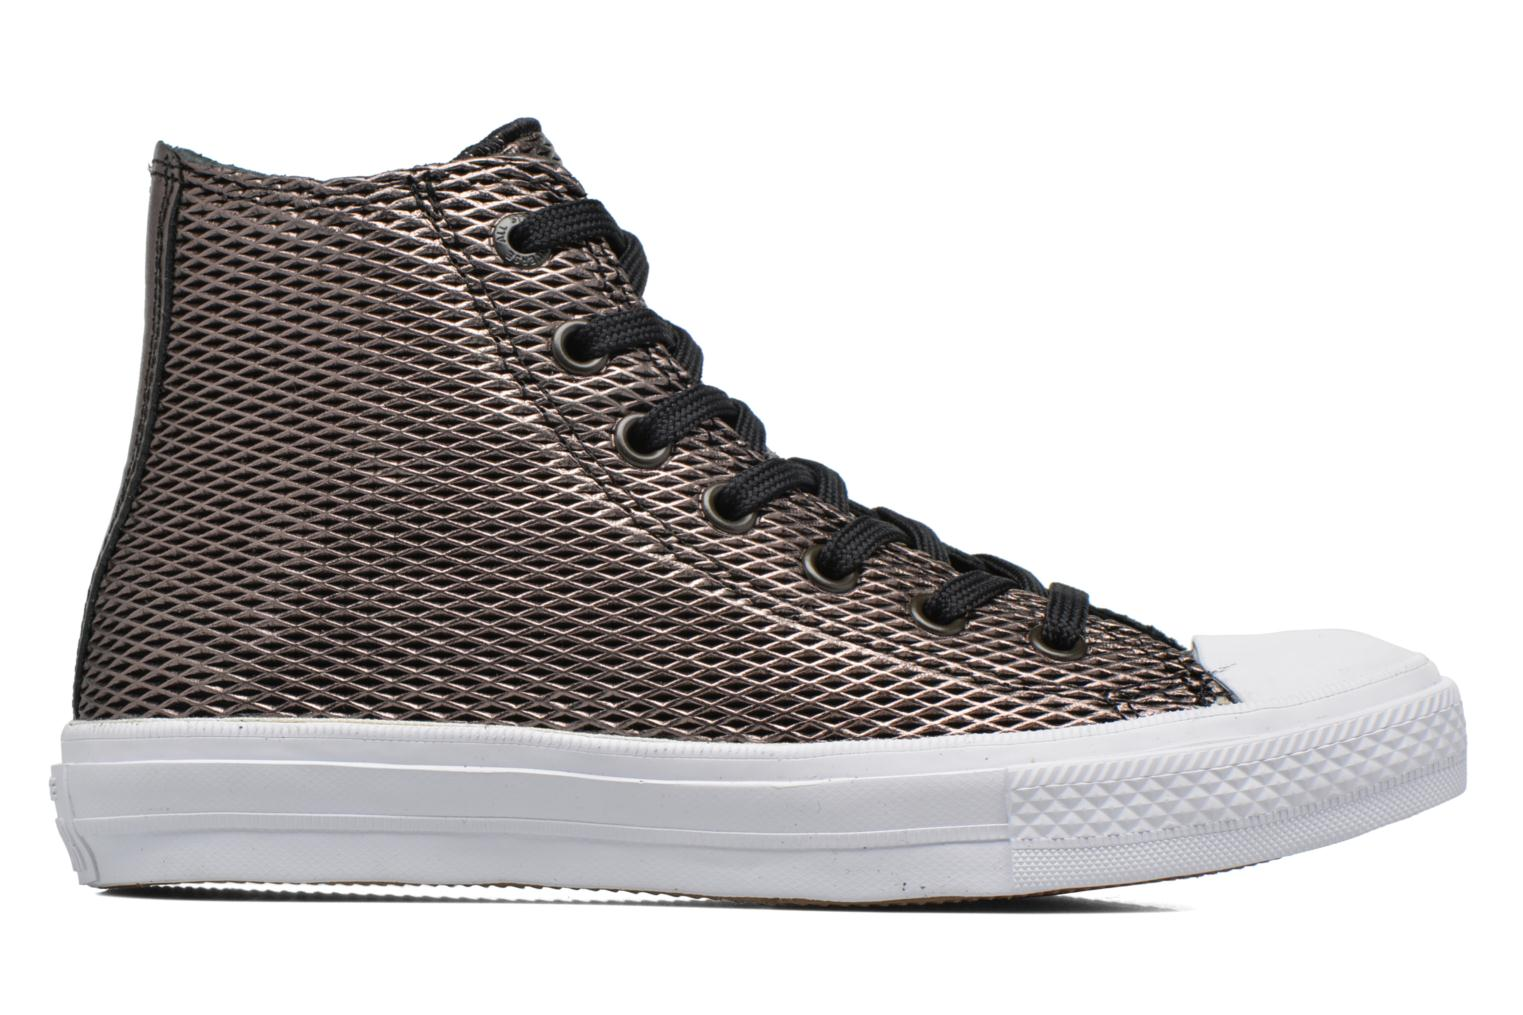 Gold/White/White Converse Chuck Taylor All Star II Hi Perf Metallic Leather (Or et bronze)